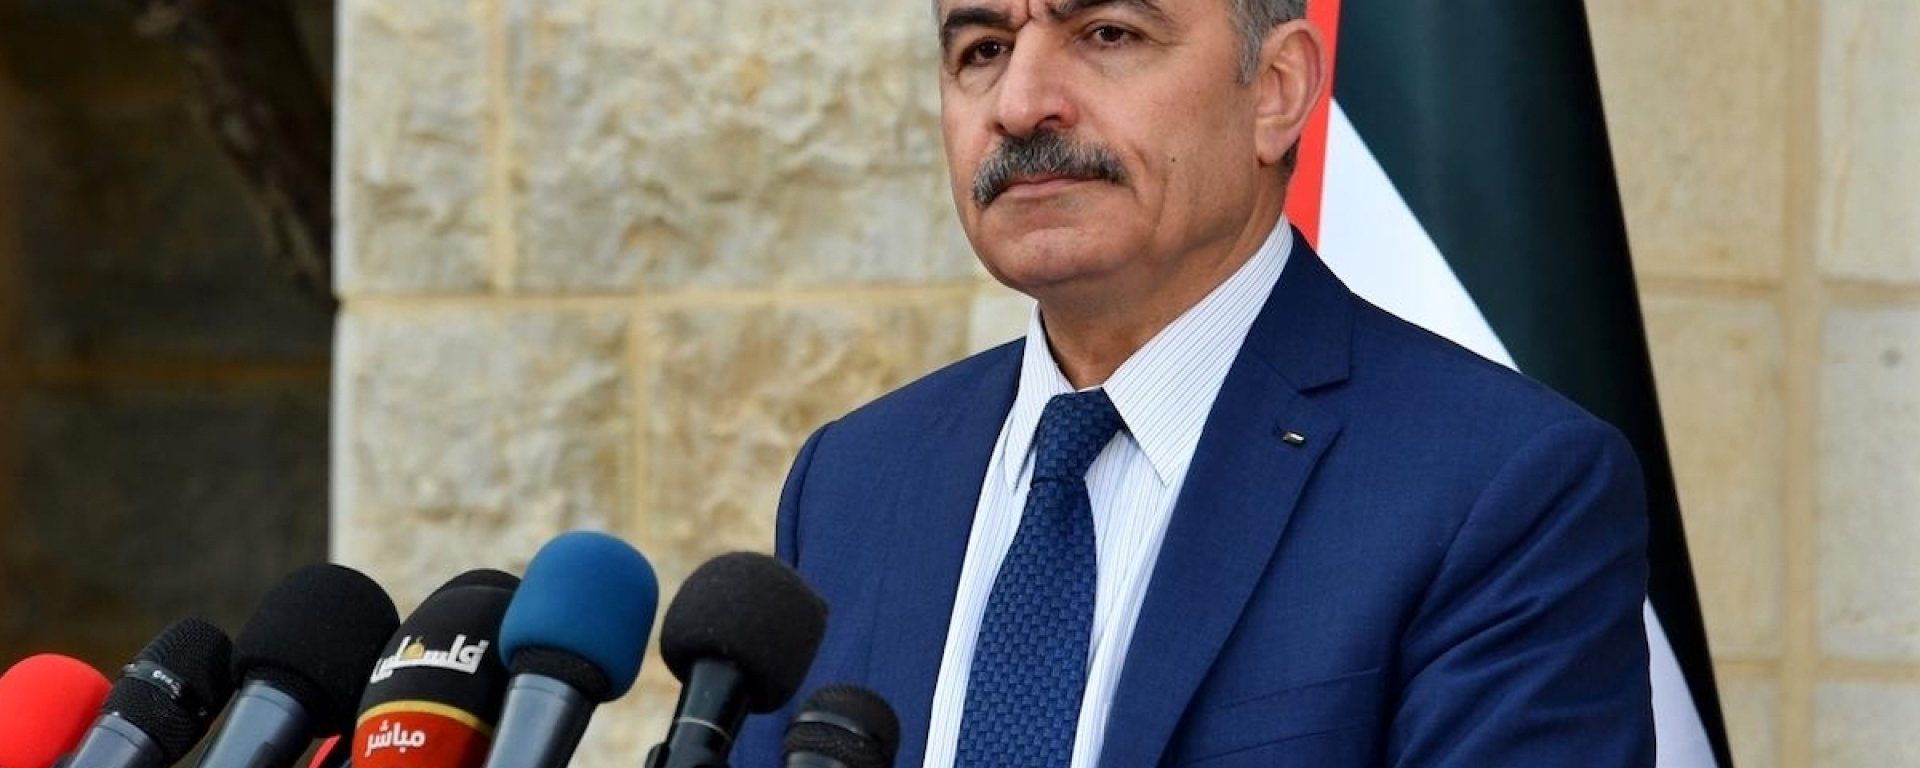 Palestinian PM Calls for EU Sanctions on Israel